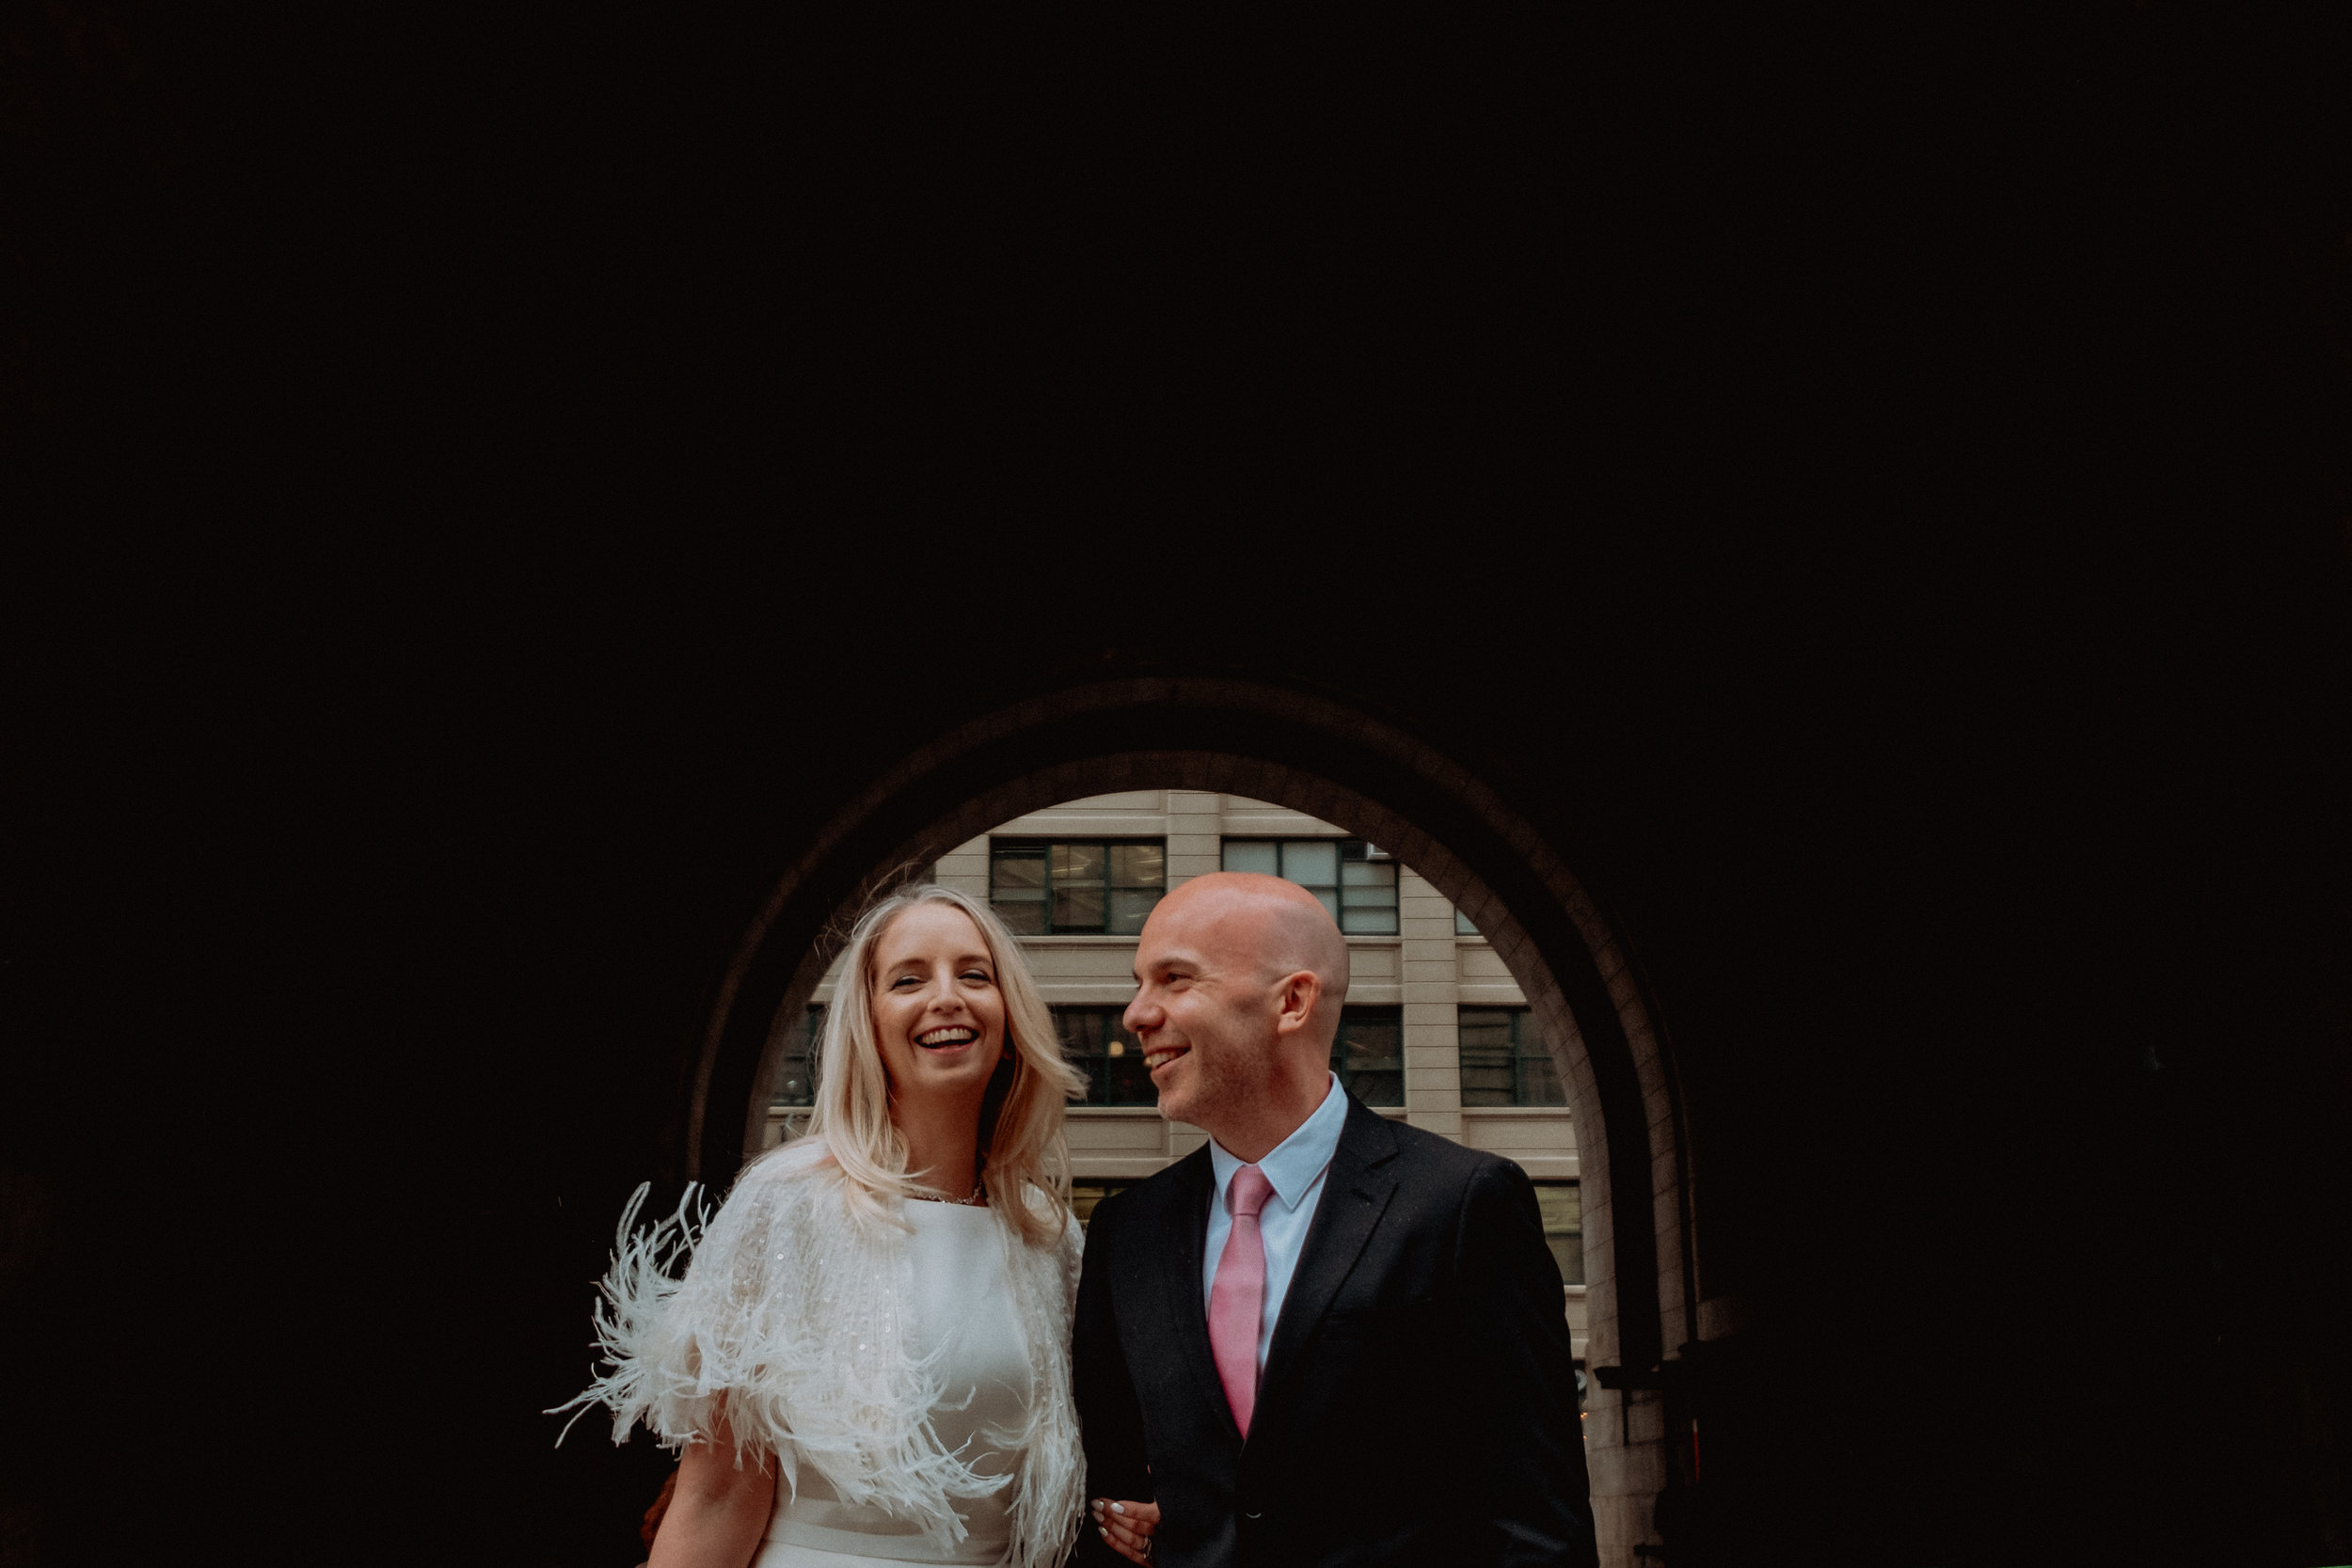 Brooklyn_City_Hall_Elopement_Photographer_Chellise_Michael_Photography233.JPG